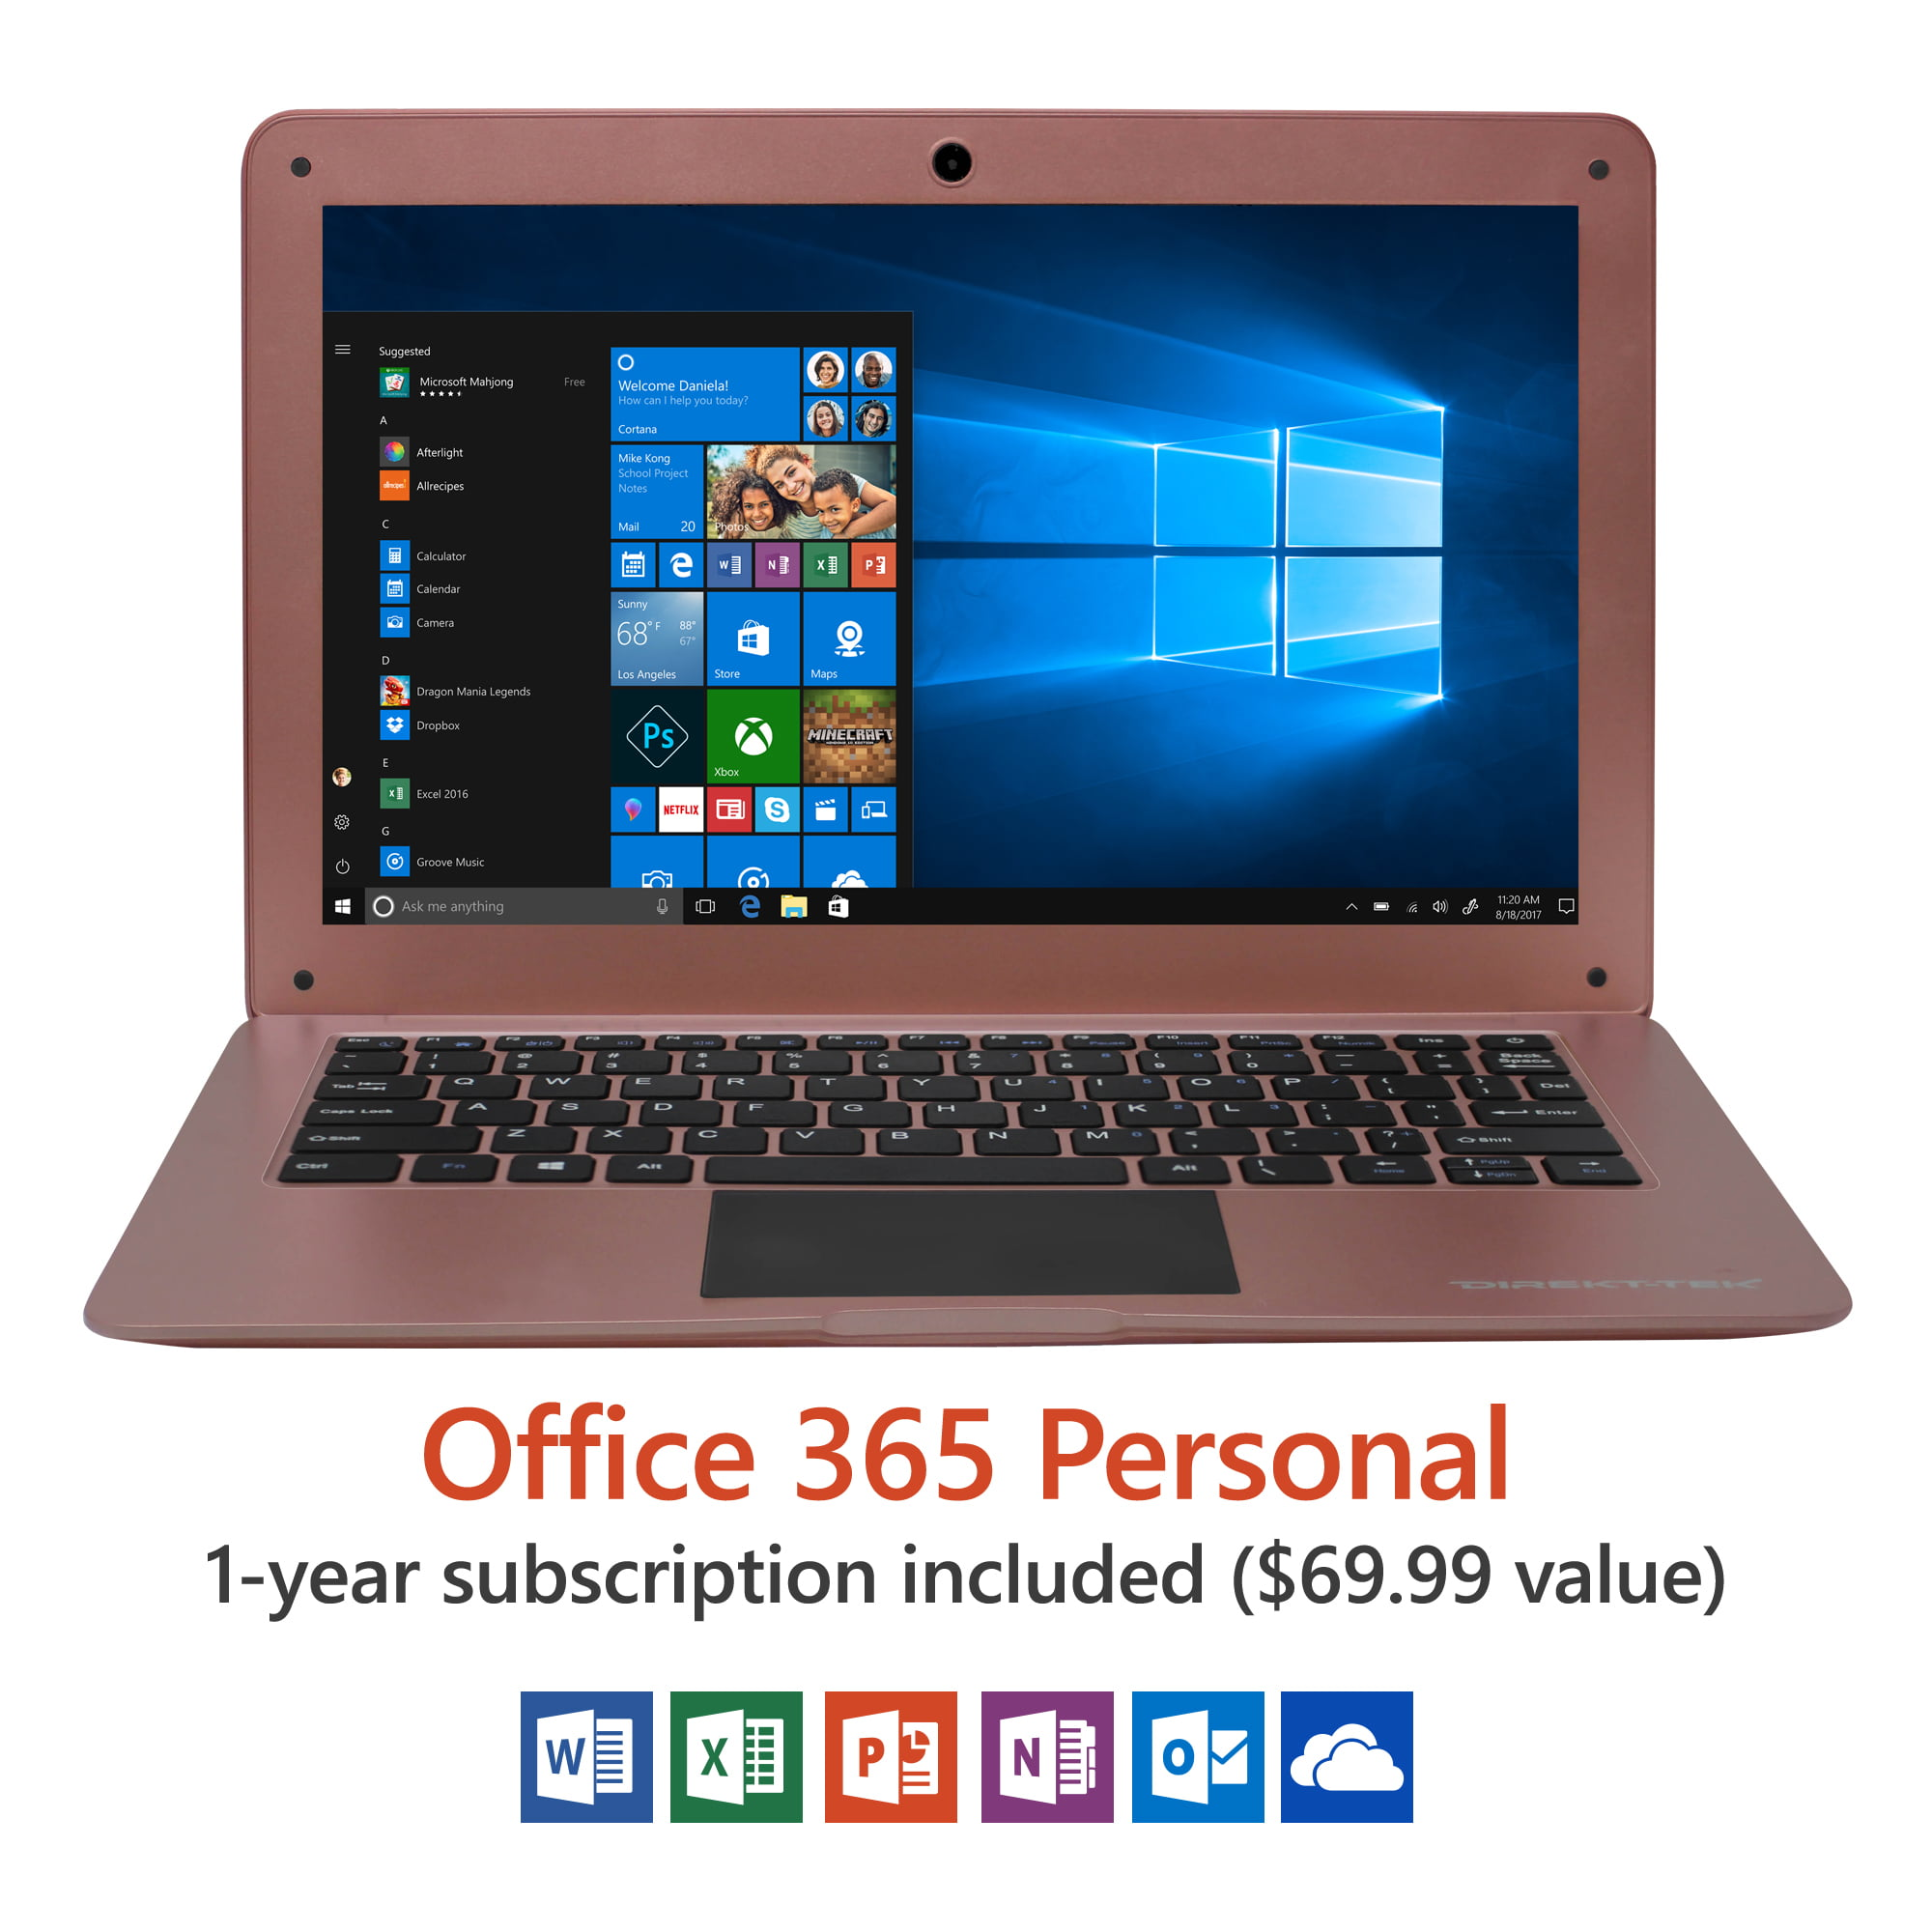 "12.5"" Ultra Slim Laptop, Windows 10 Home, Office 365 Personal 1-Year Subscription Included ($69.99... by Direkt-Tek"